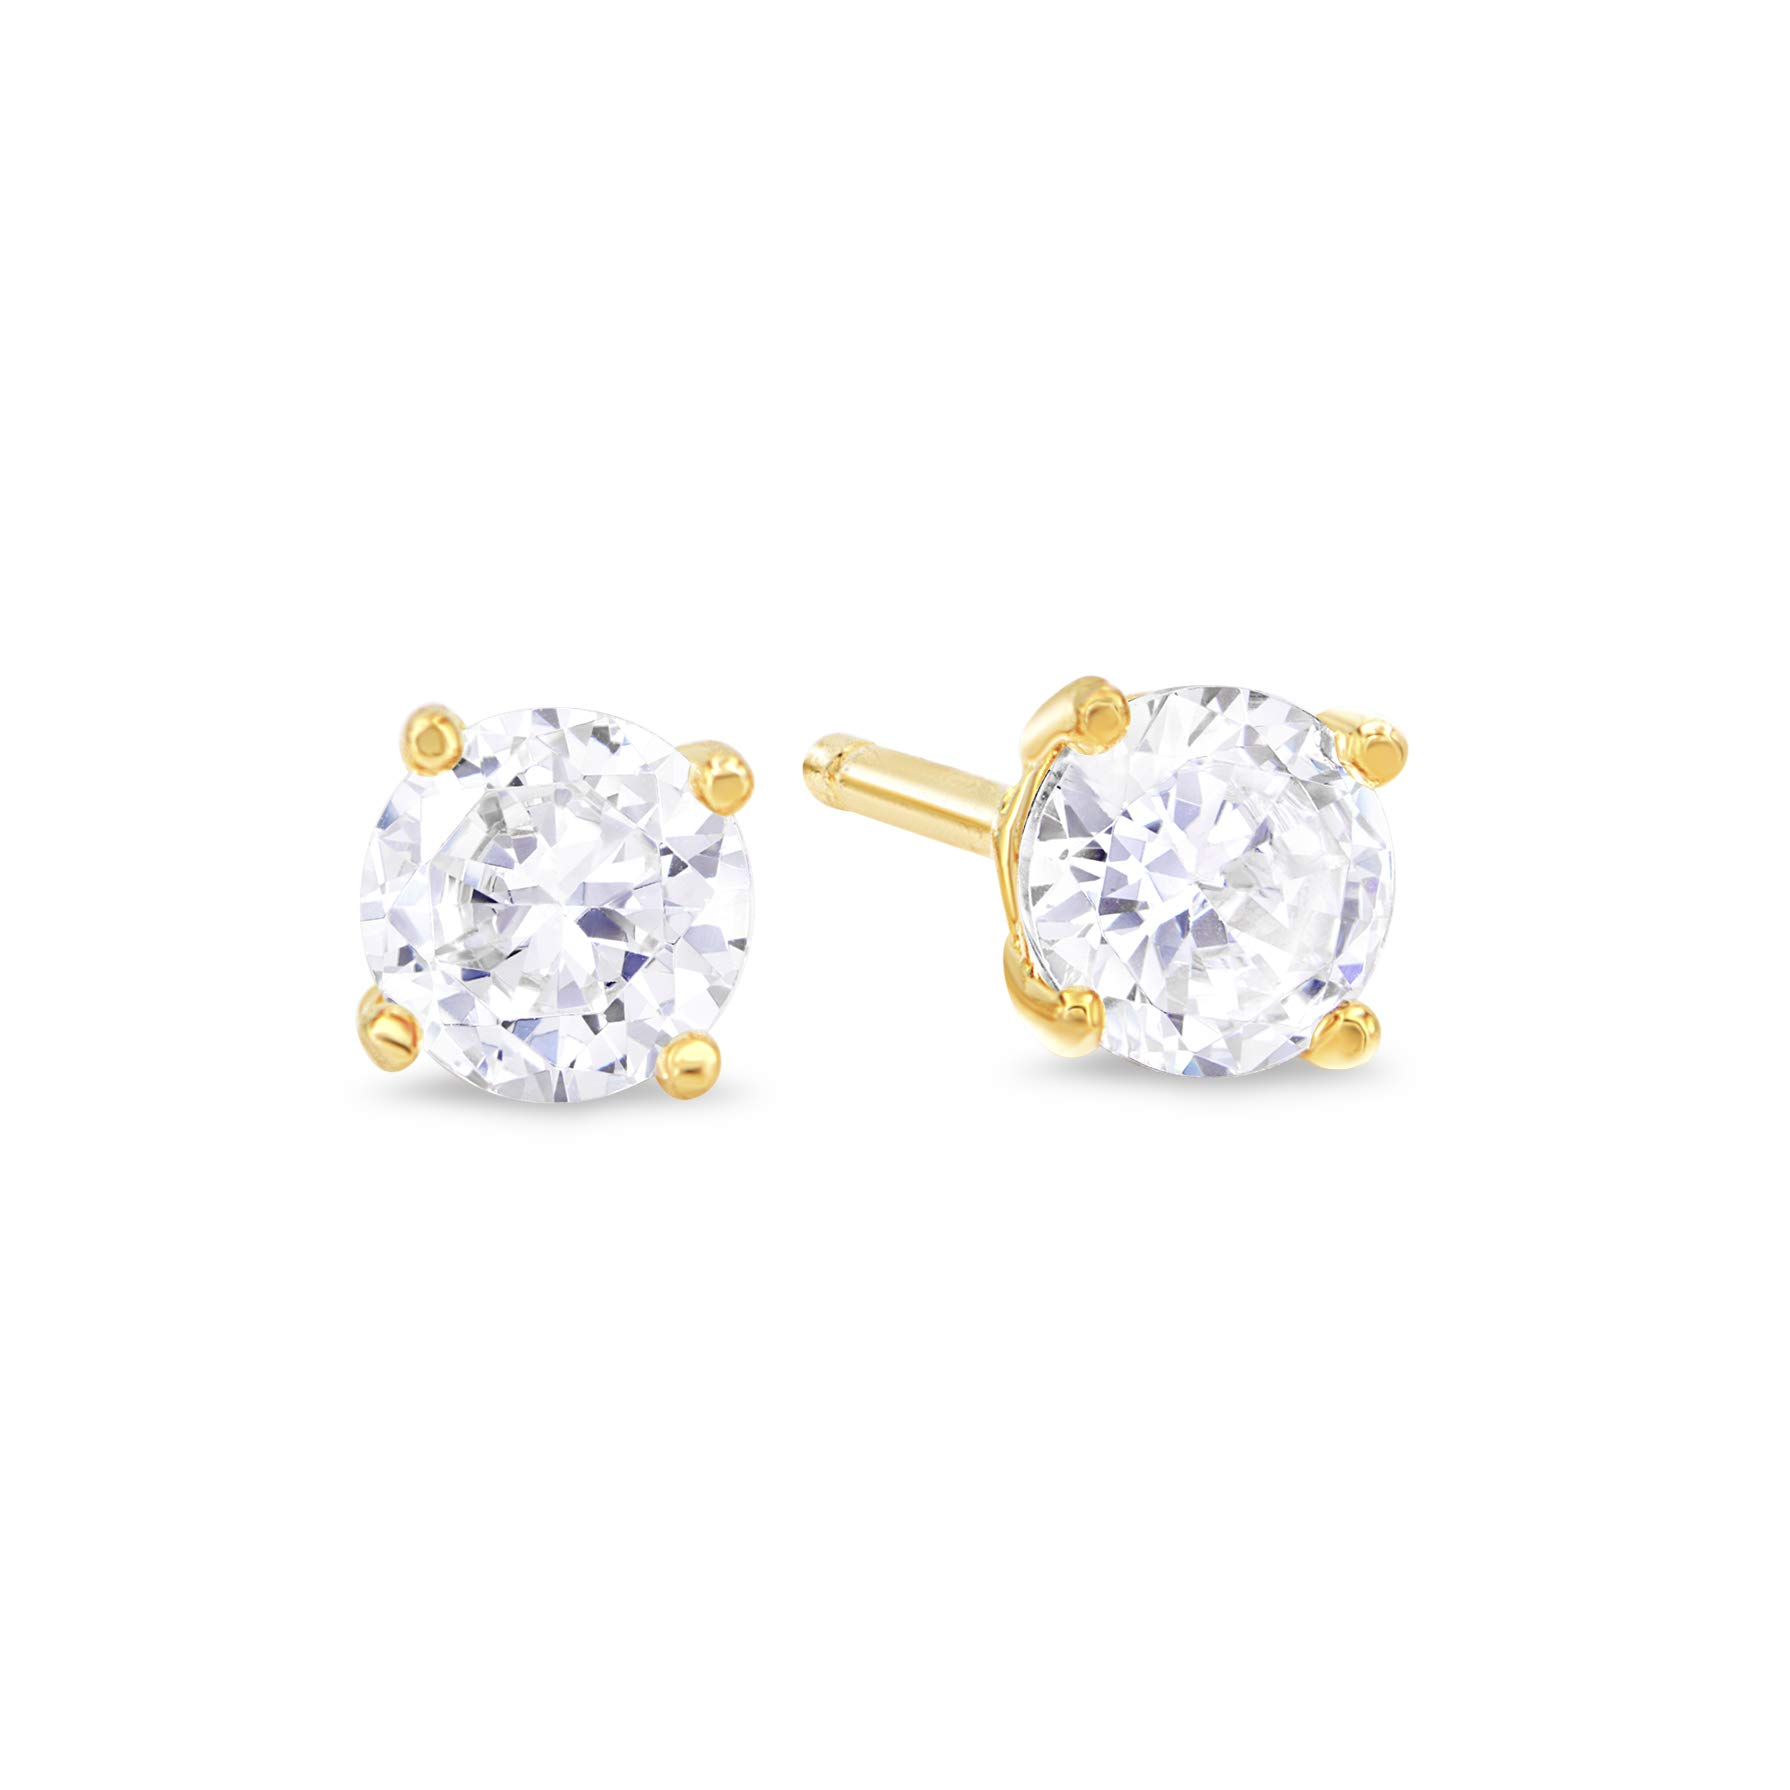 Kezef Gold Plated Sterling Silver Stud Earrings for Women and Men, Round Brilliant Cut CZ Cubic Zirconia in .925 Silver Basket Setting, 3mm - 15mm